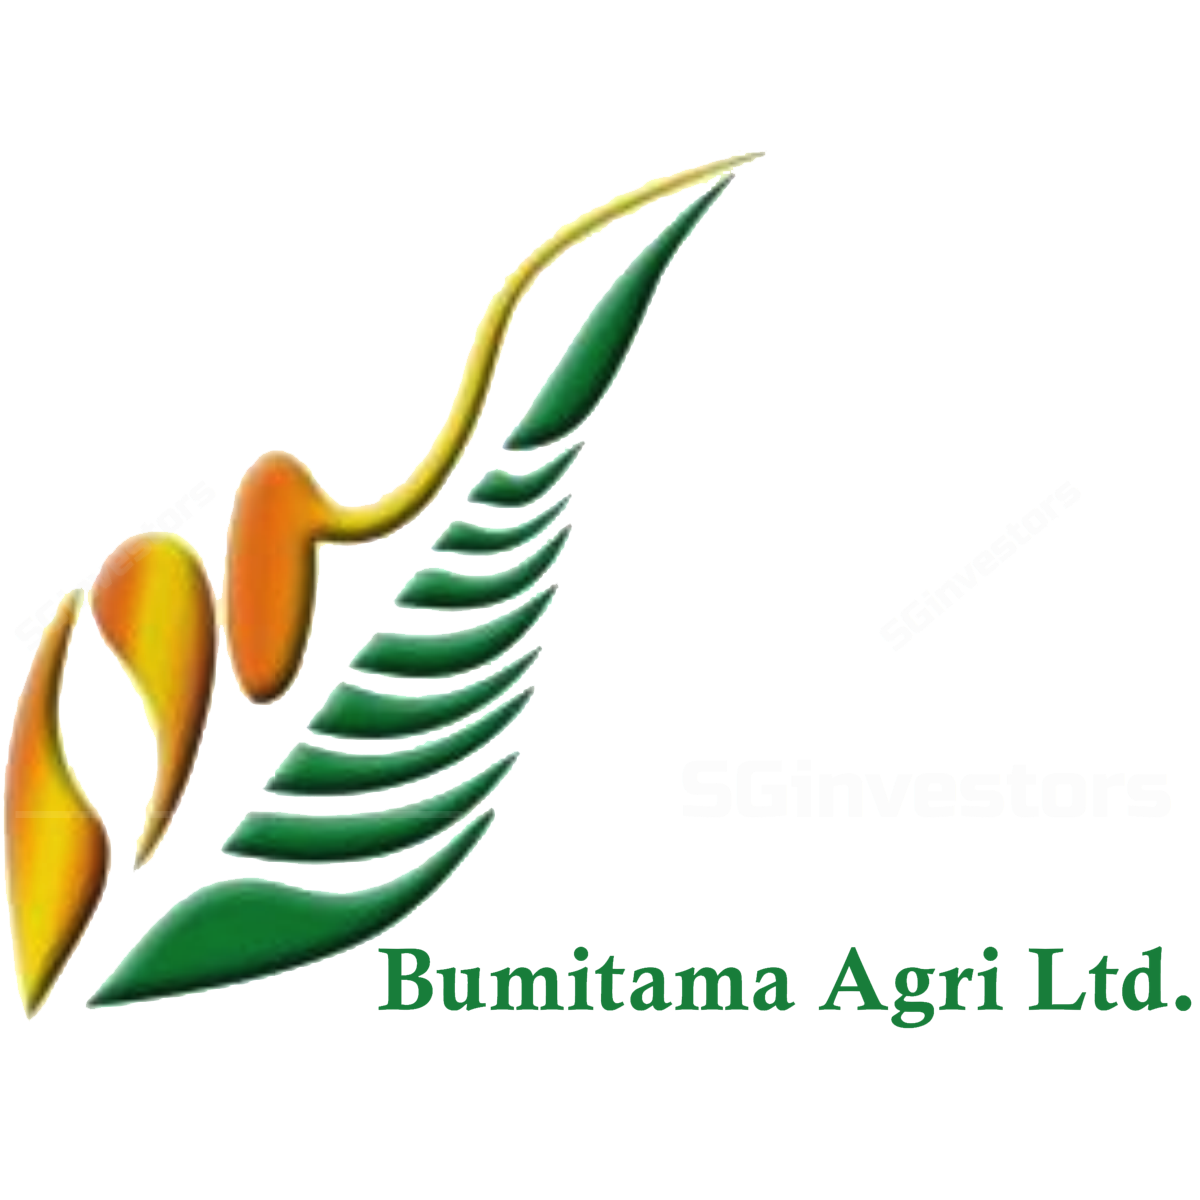 Bumitama Agri (BAL SP) - UOB Kay Hian 2016-11-16: Anticipating A Better 4Q16 And 2017